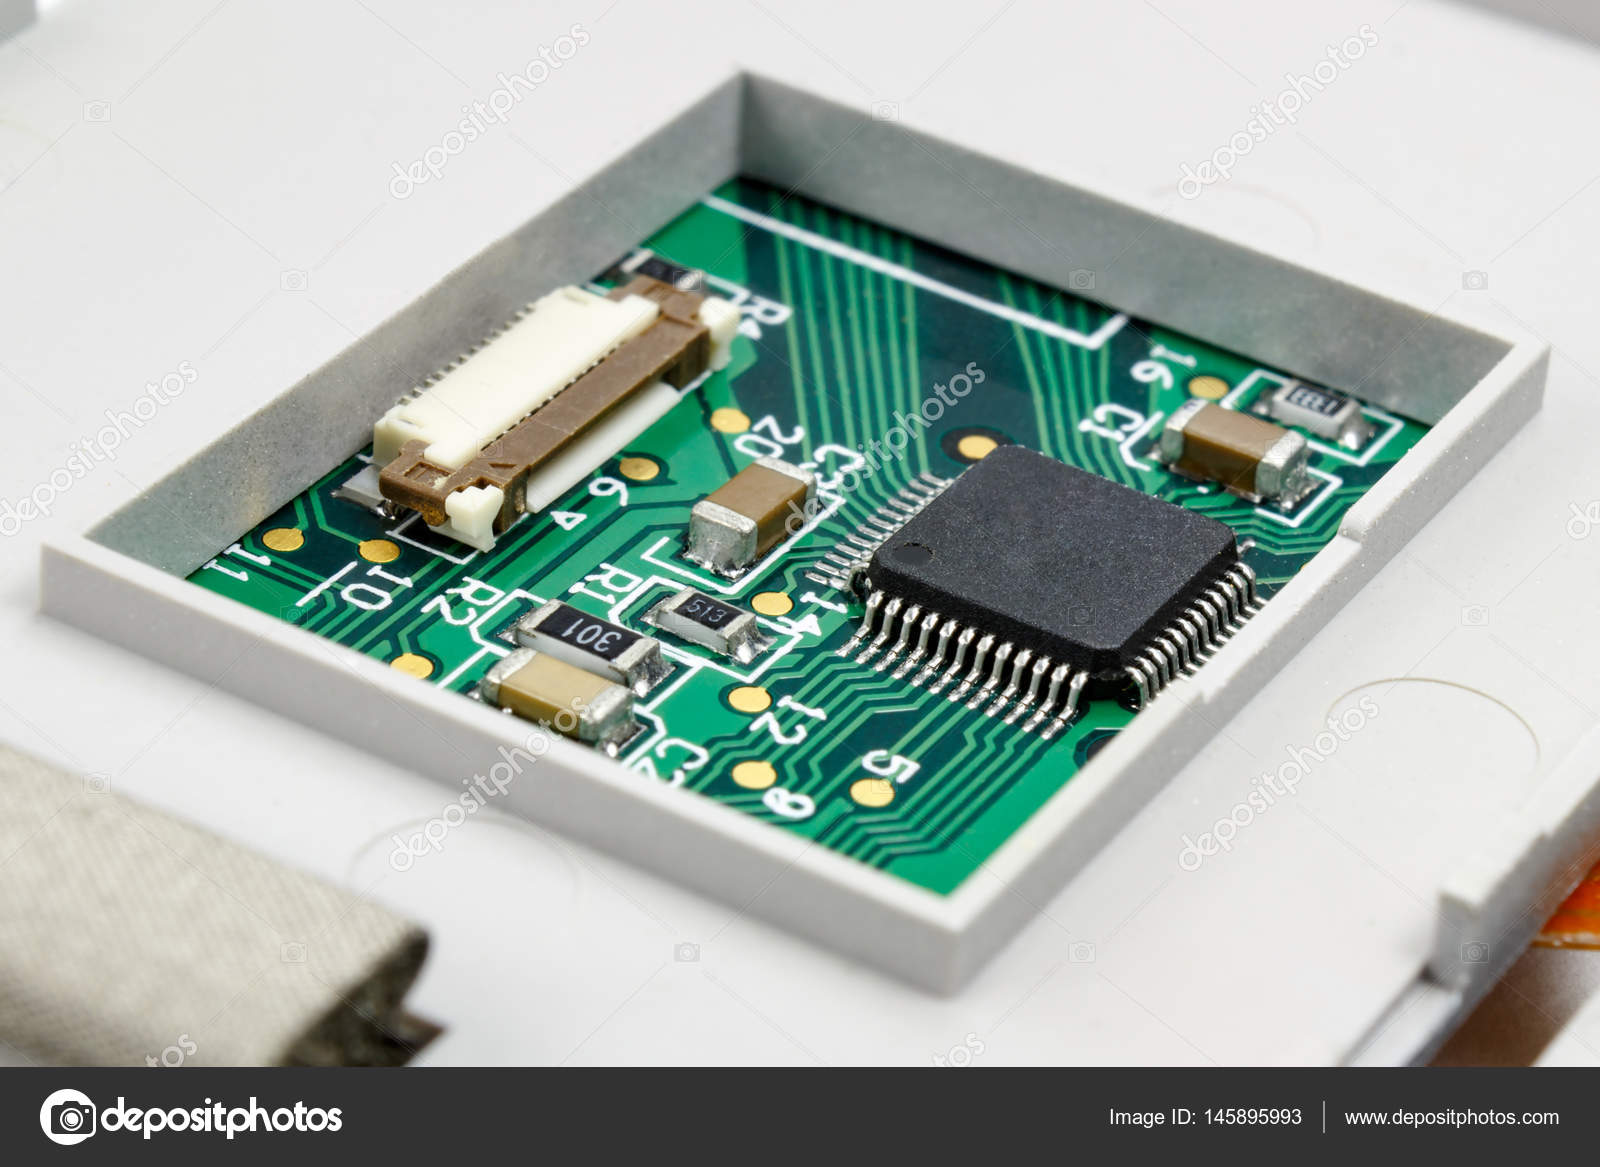 Circuit Board With Installed Electronic Components In The Housing Stockfoto Printed Pcb Used Industrial Photo By Bonekot